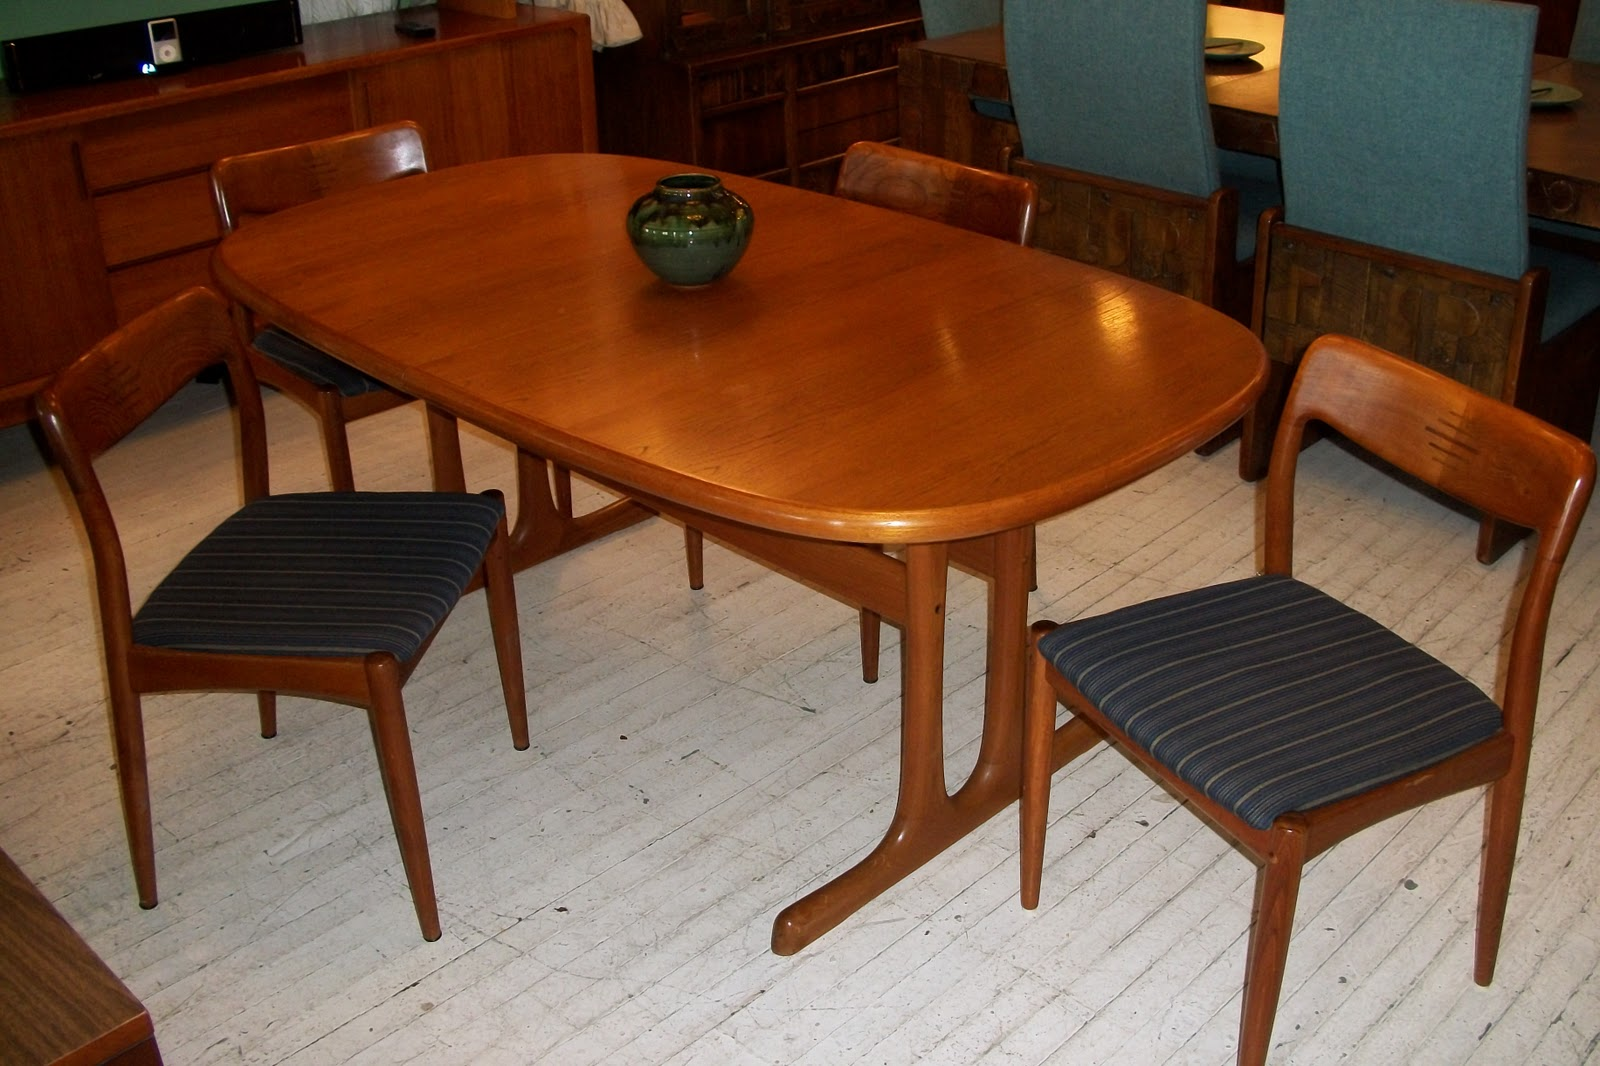 An orange moon d scan solid teak dining room table 4 chairs for 4 dining room table